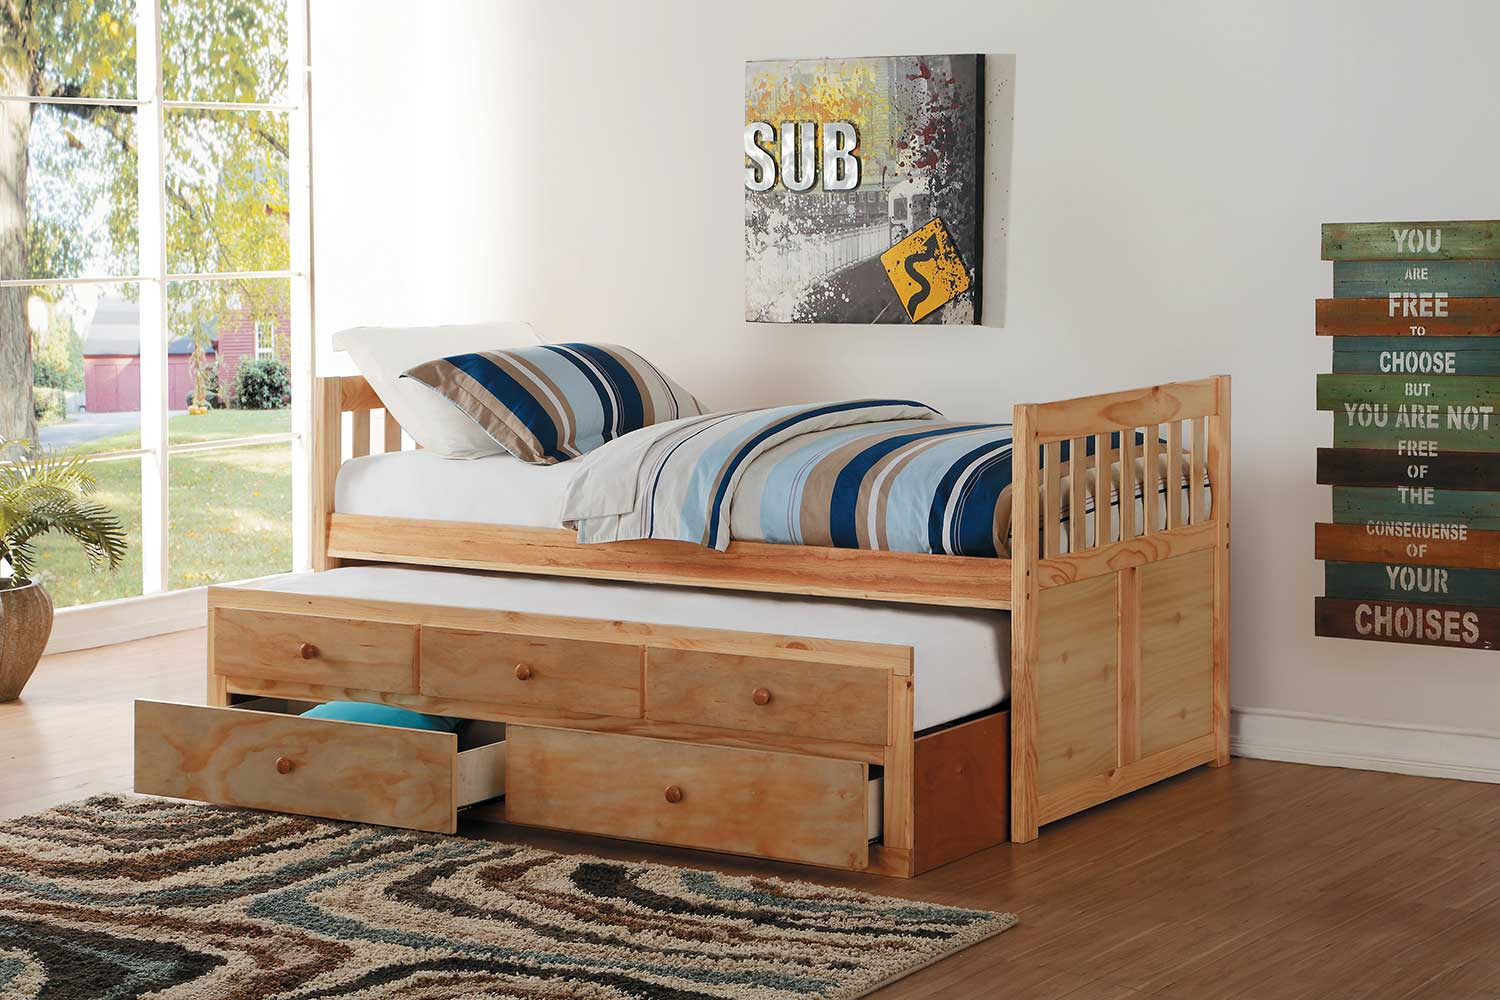 Homelegance Bartly Twin Bed with Trundle and Two Storage Drawers - Natural Pine